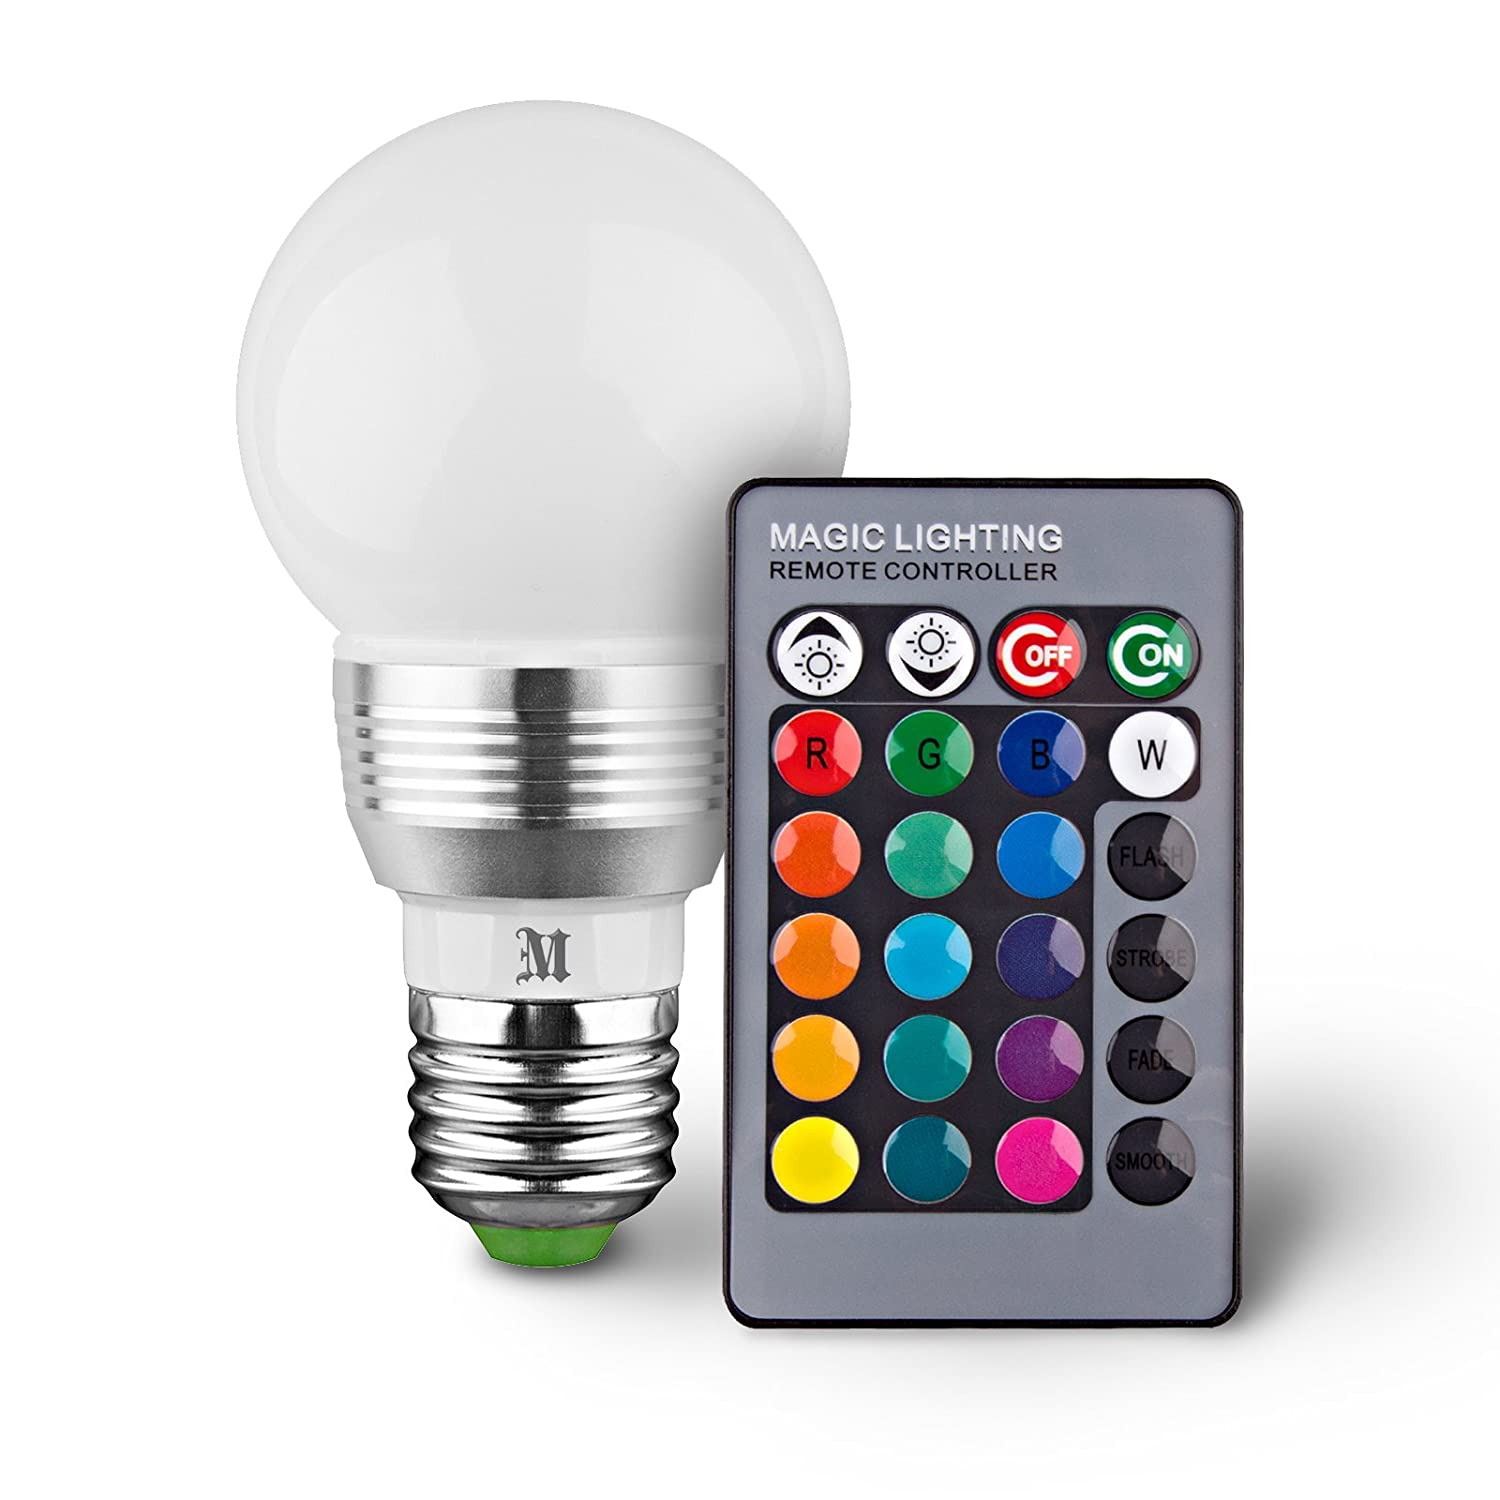 Kobra Retro Led Color Changing Light Bulb With Remote Control 16 10 Watt And Driver Related Question Electrical Engineering Different Choices Smooth Flash Or Strobe Mode Premium Quality Energy Saving